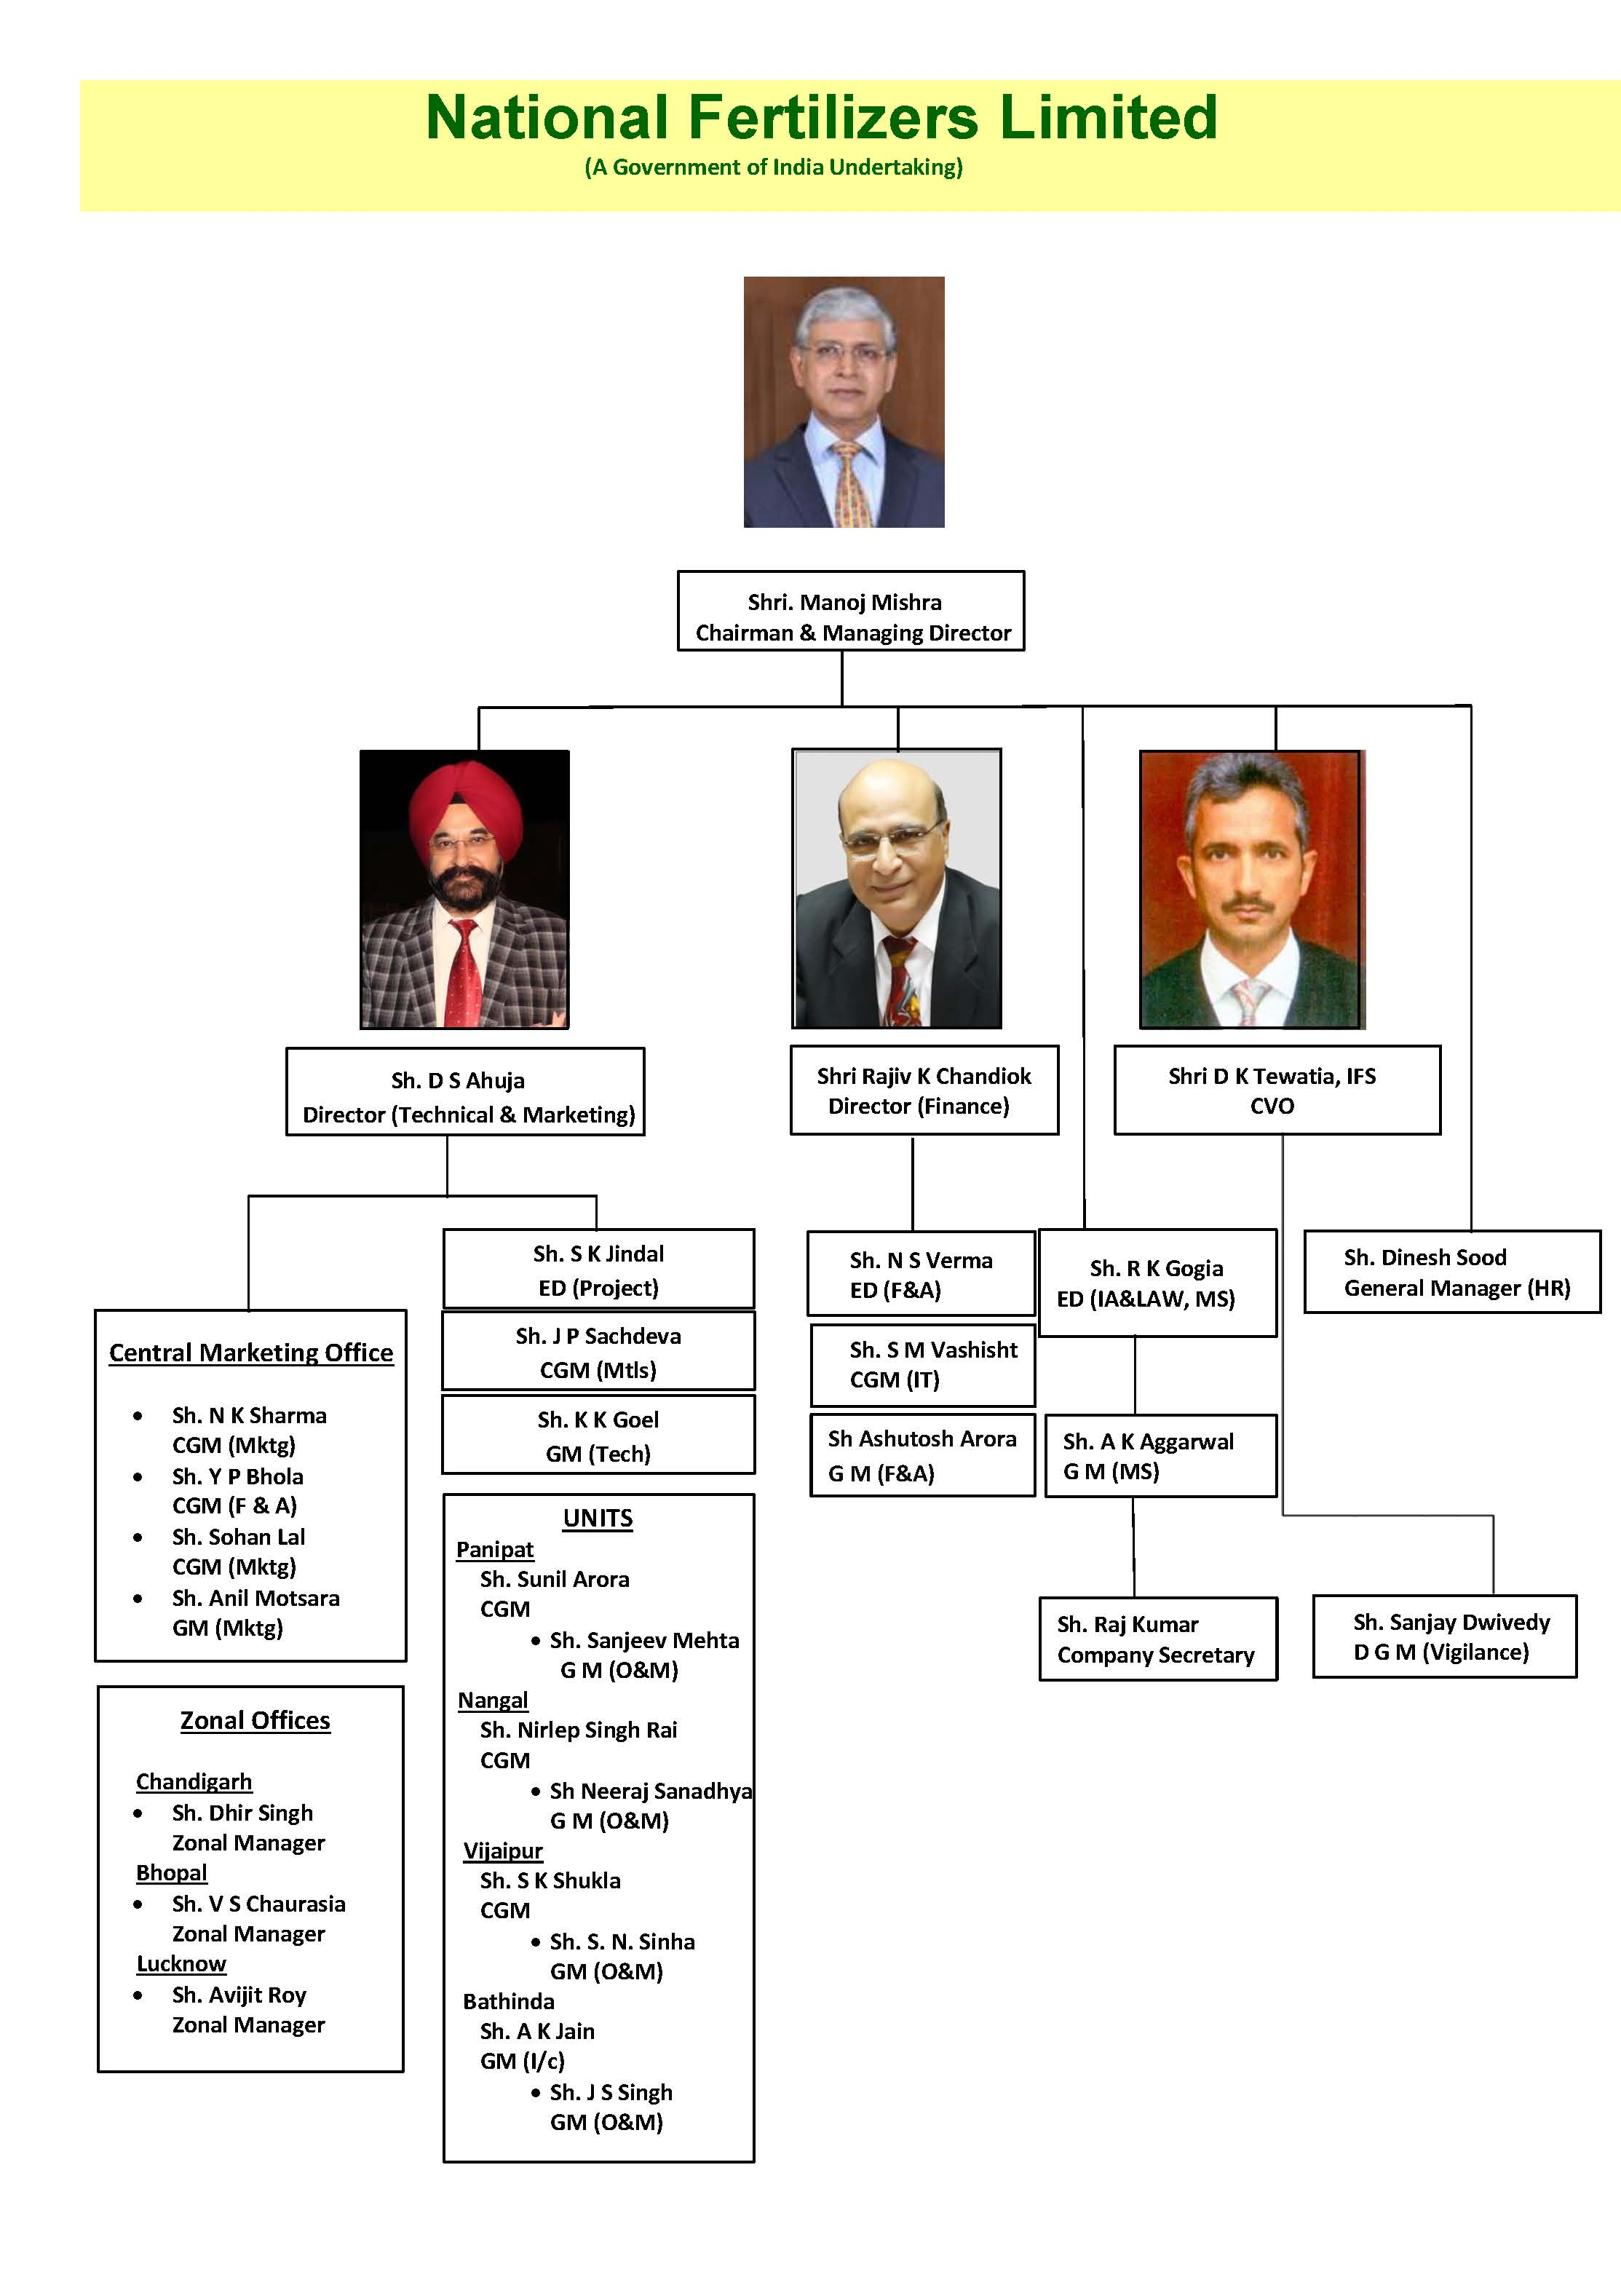 Organization Chart as on 30.5.2018